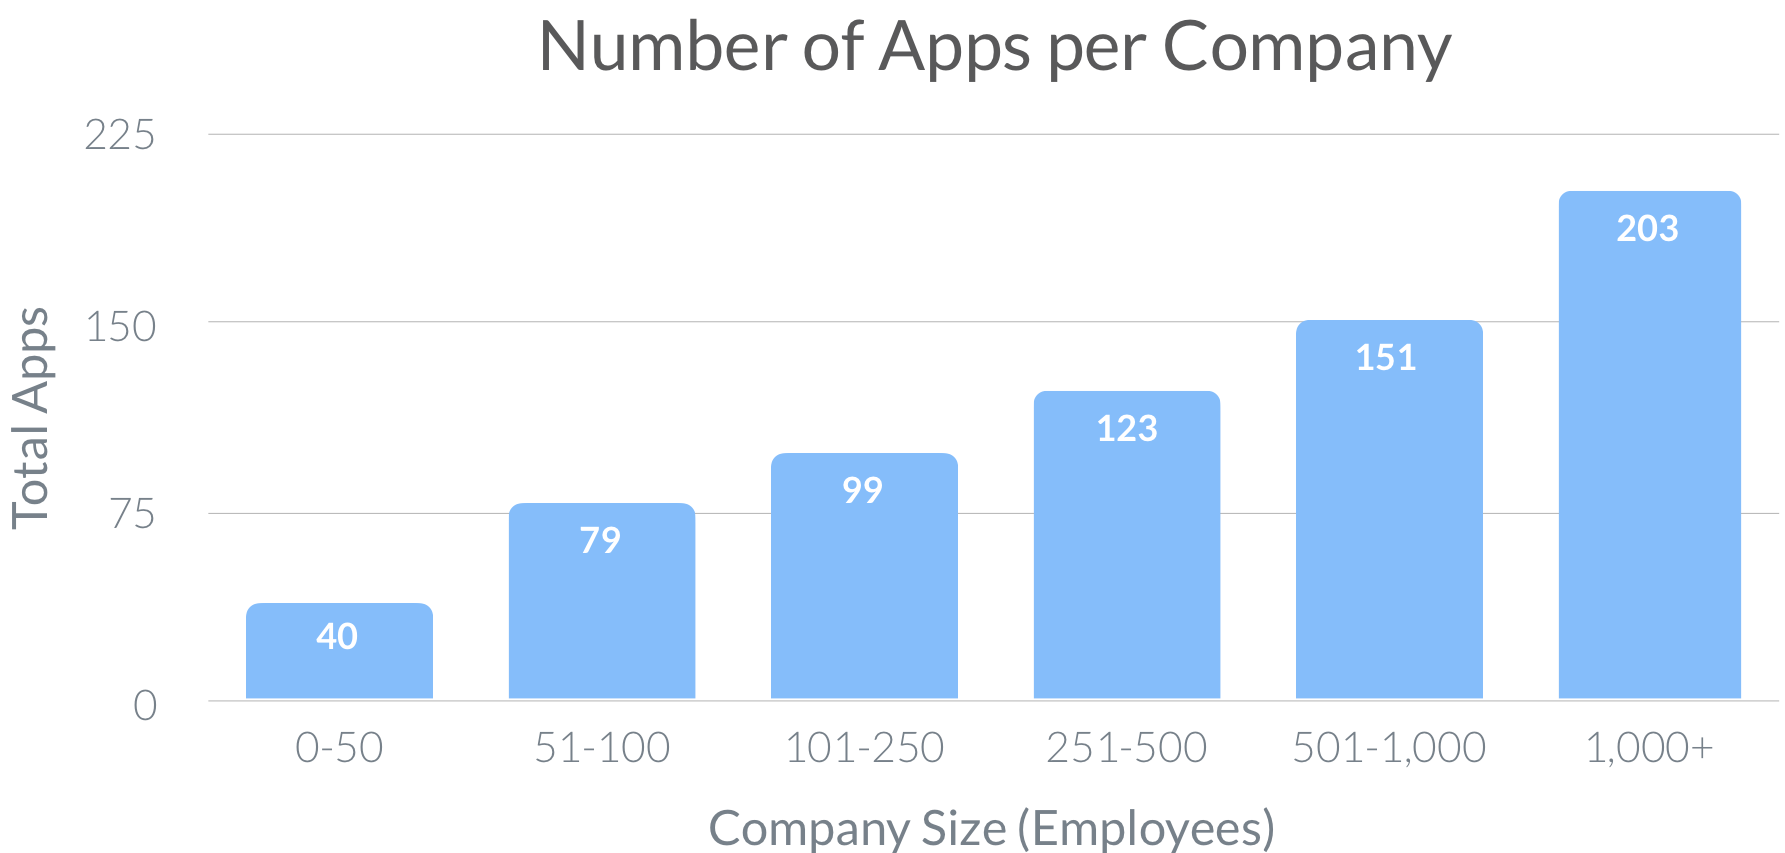 Number of Apps per Company